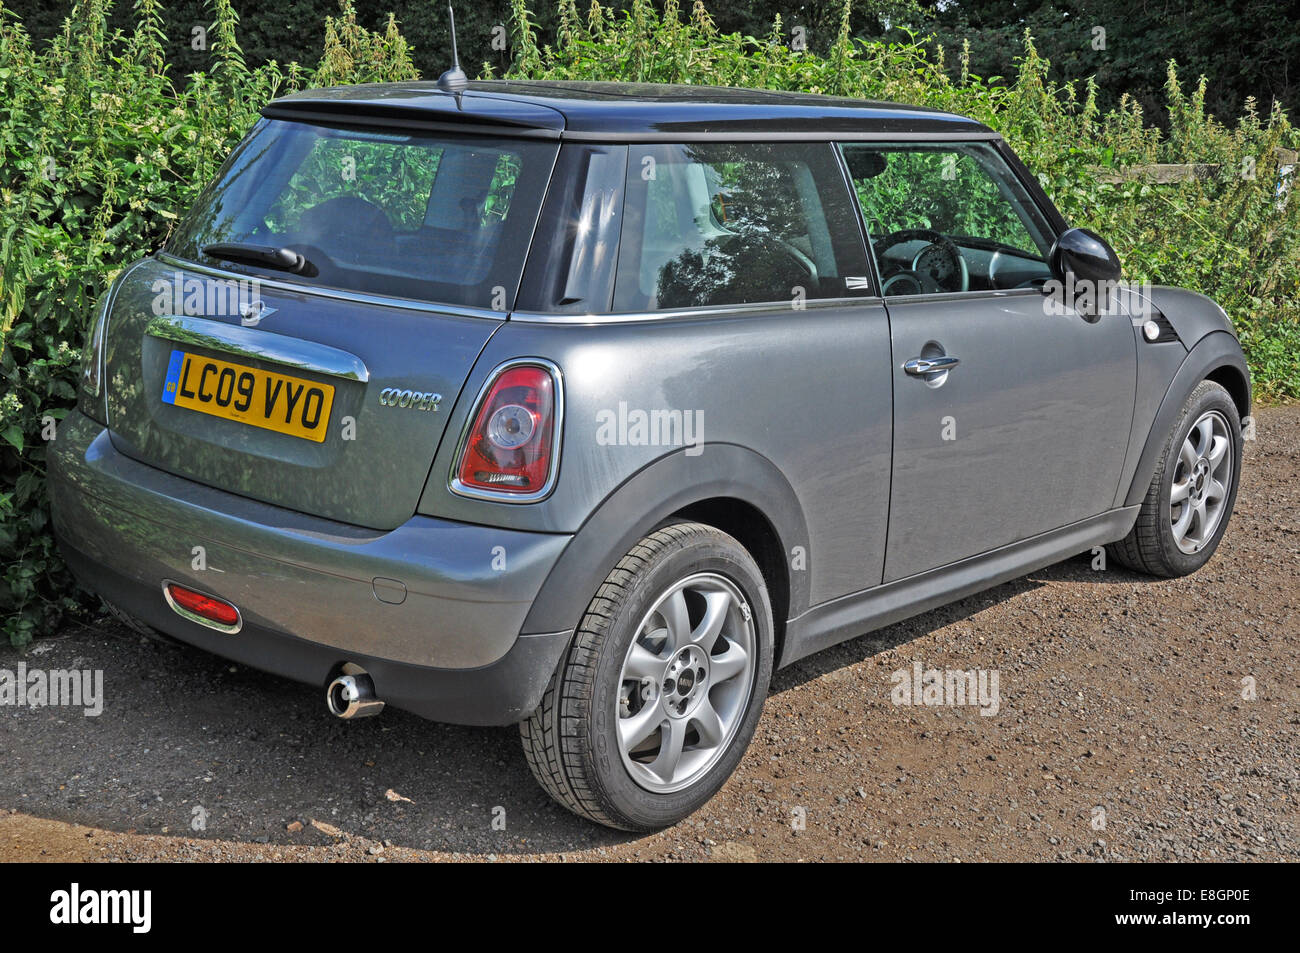 2009 GB registered, iconic, classic design, Mini Cooper (manufactured by BMW). The car is parked and unoccupied - Stock Image